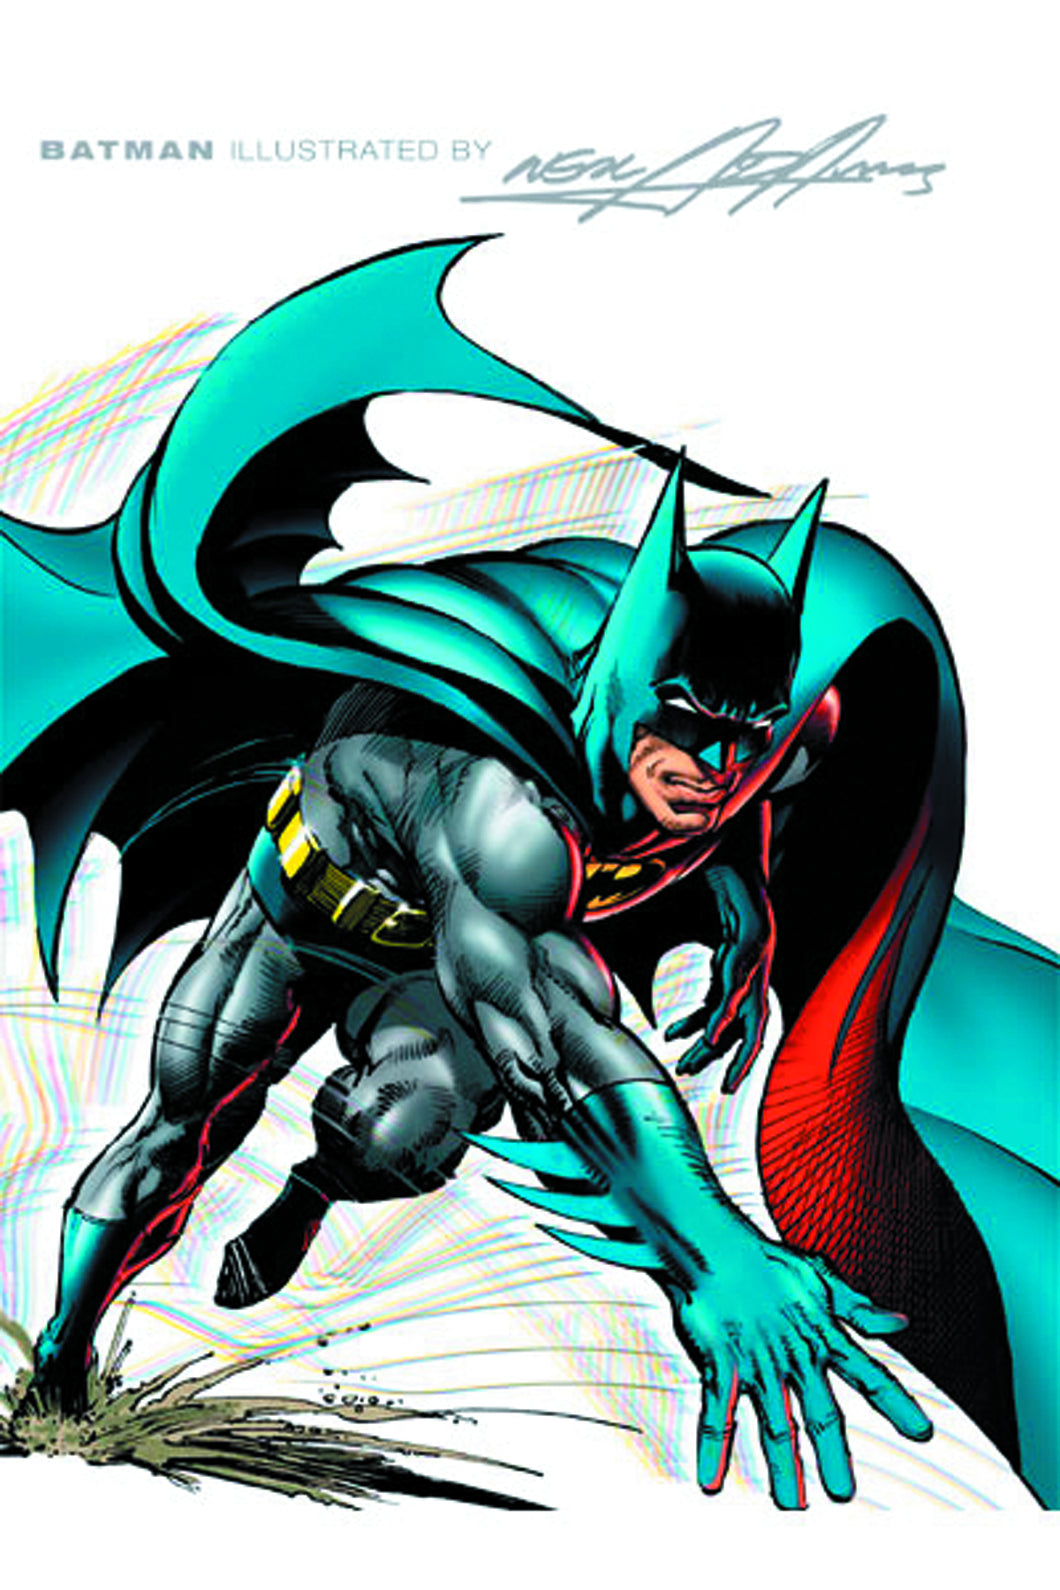 BATMAN ILLUSTRATED BY NEAL ADAMS TP VOL 01